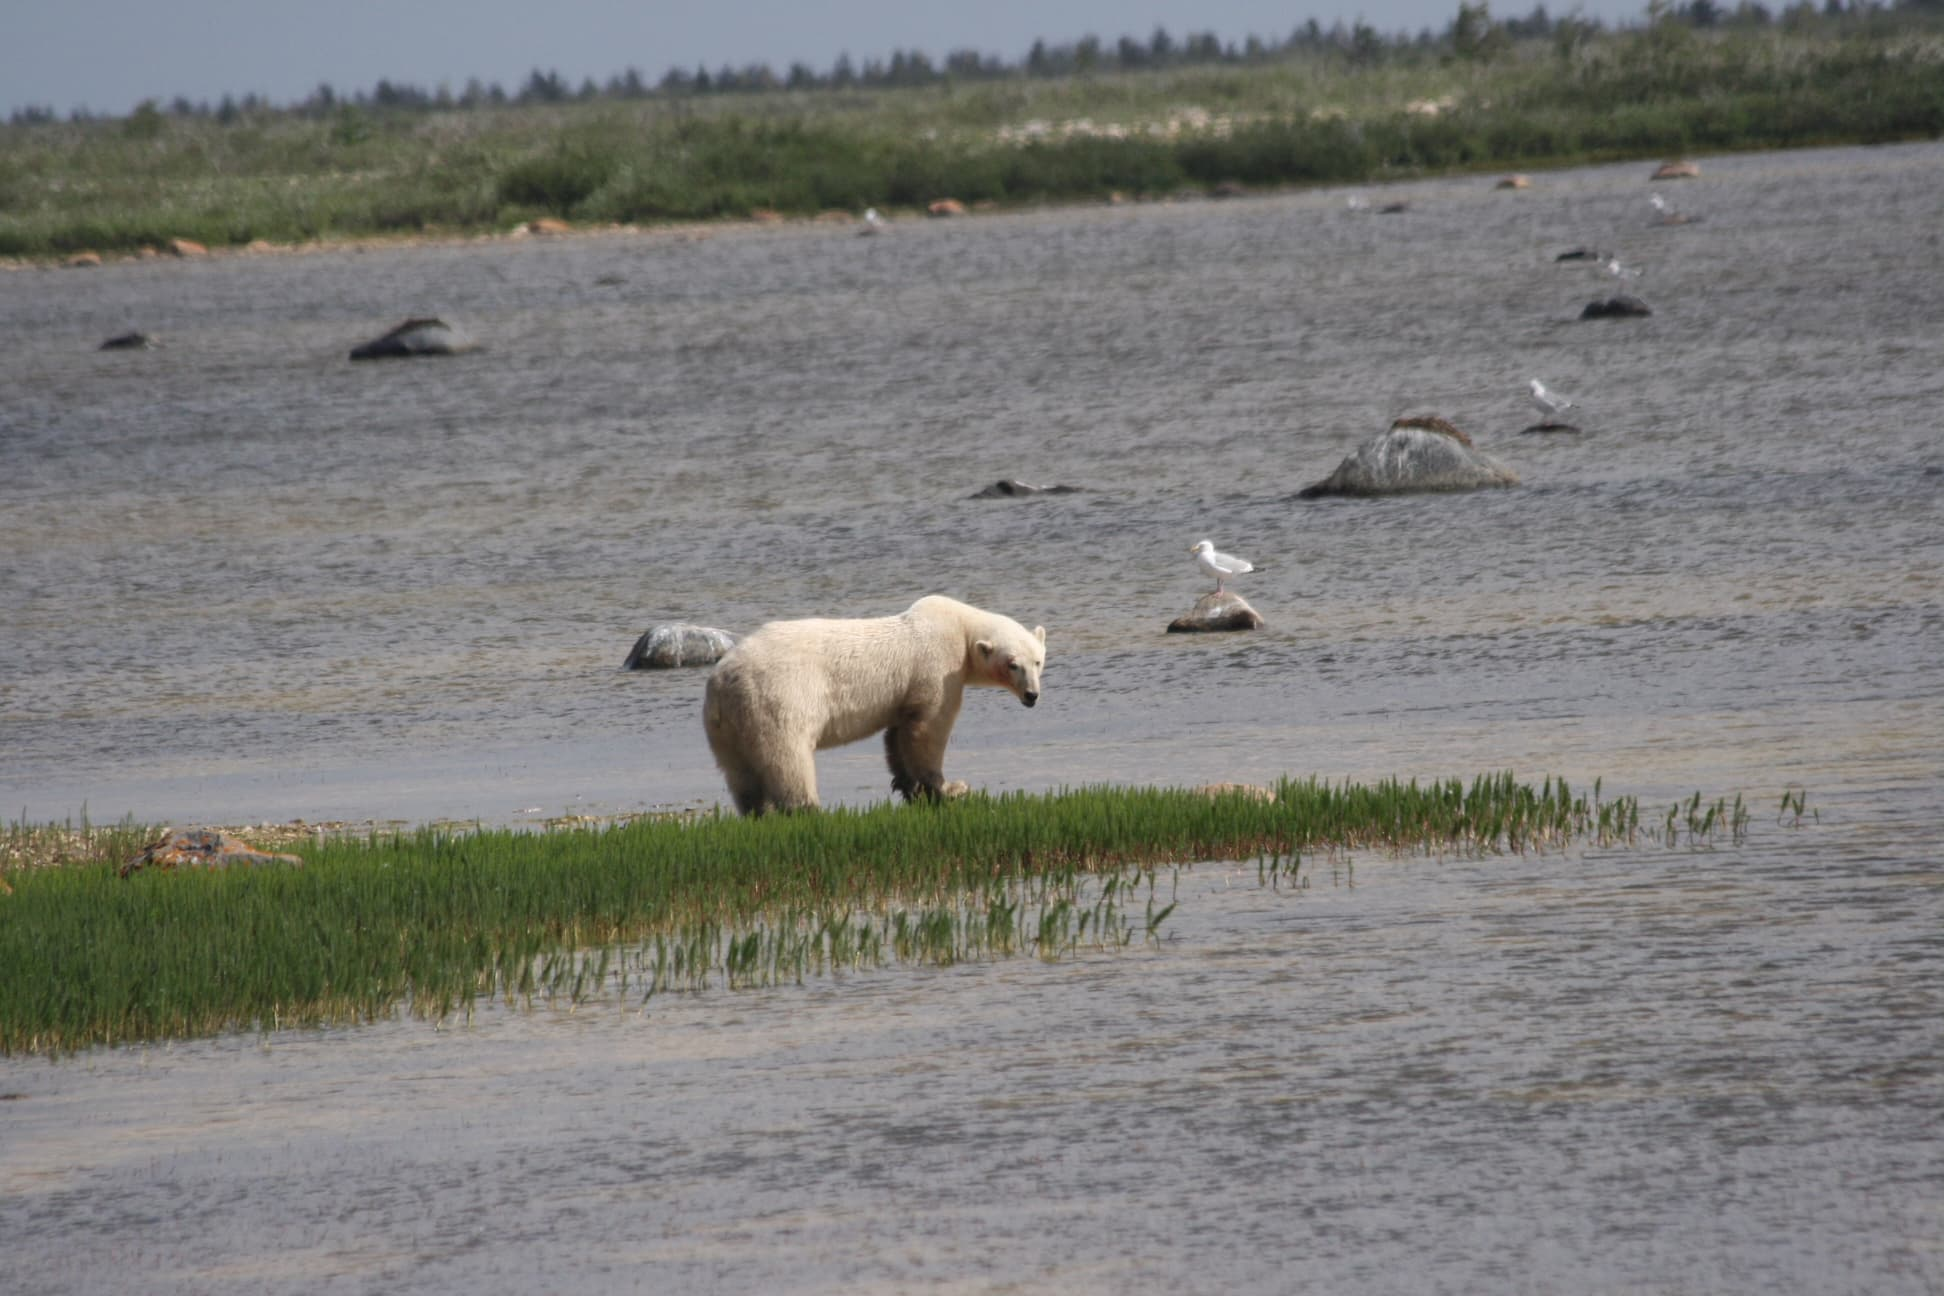 polar bear standing in the middle of a marsh and surrounded by water